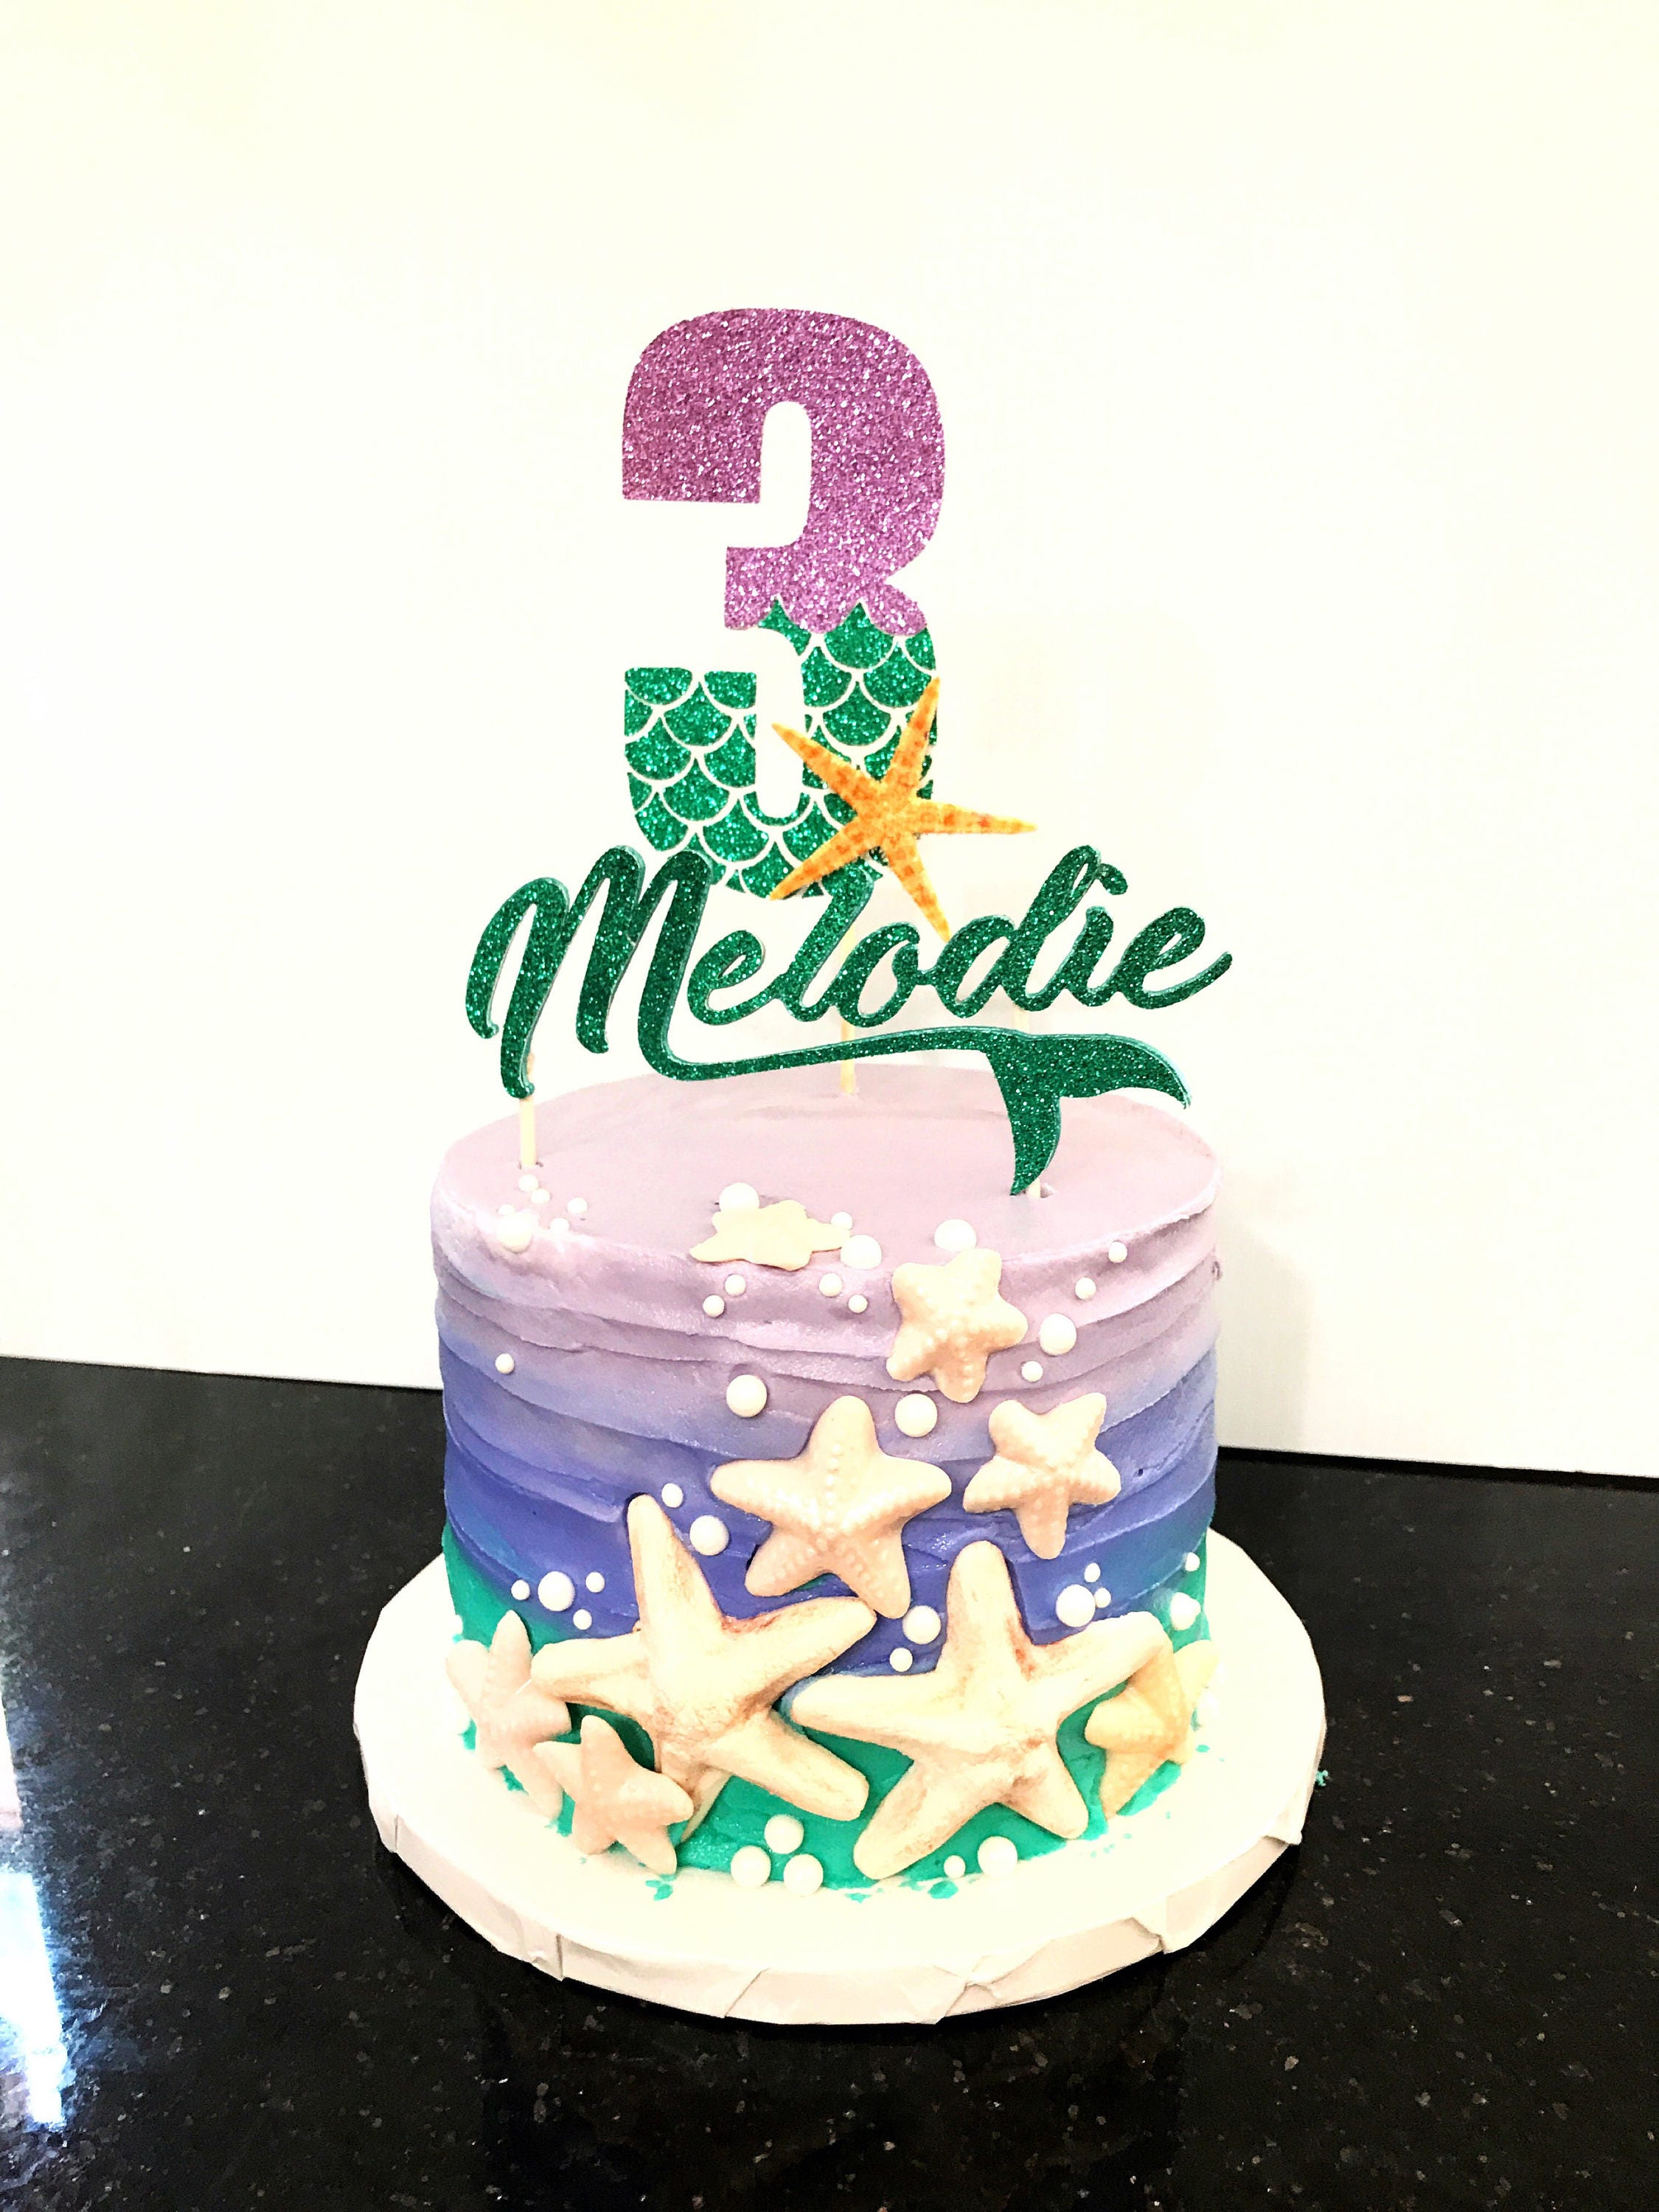 Cake Decoration Items Names : Mermaid Cake Topper / Under the Sea Cake Decorations / Name